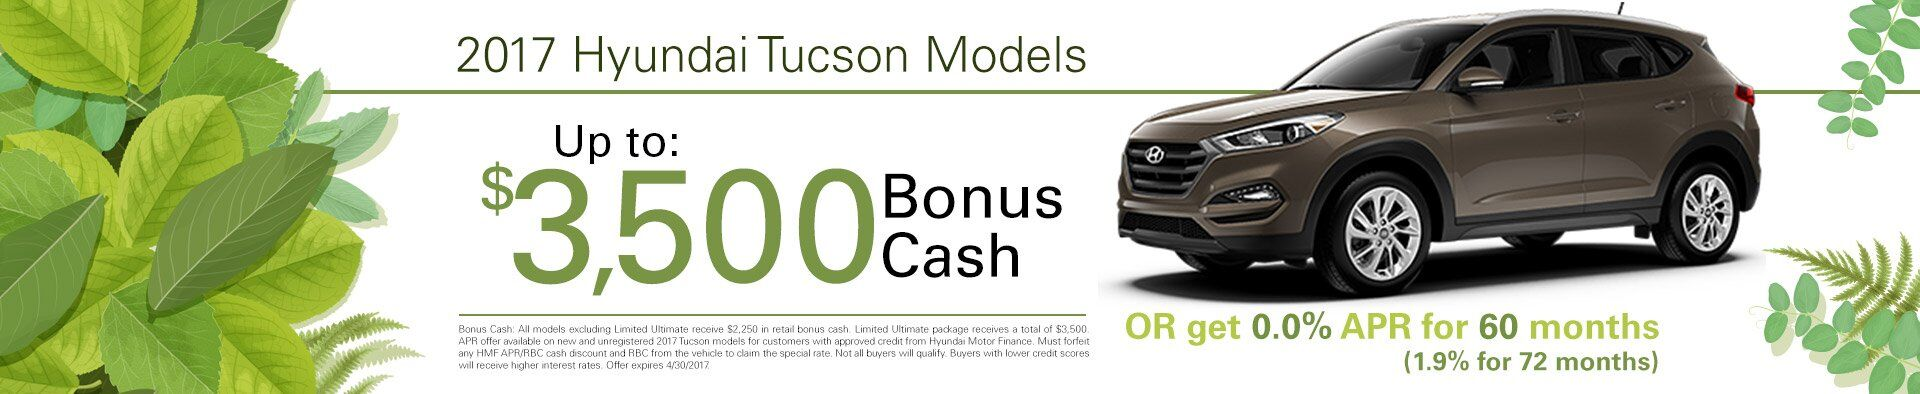 Tucson Additional Offers